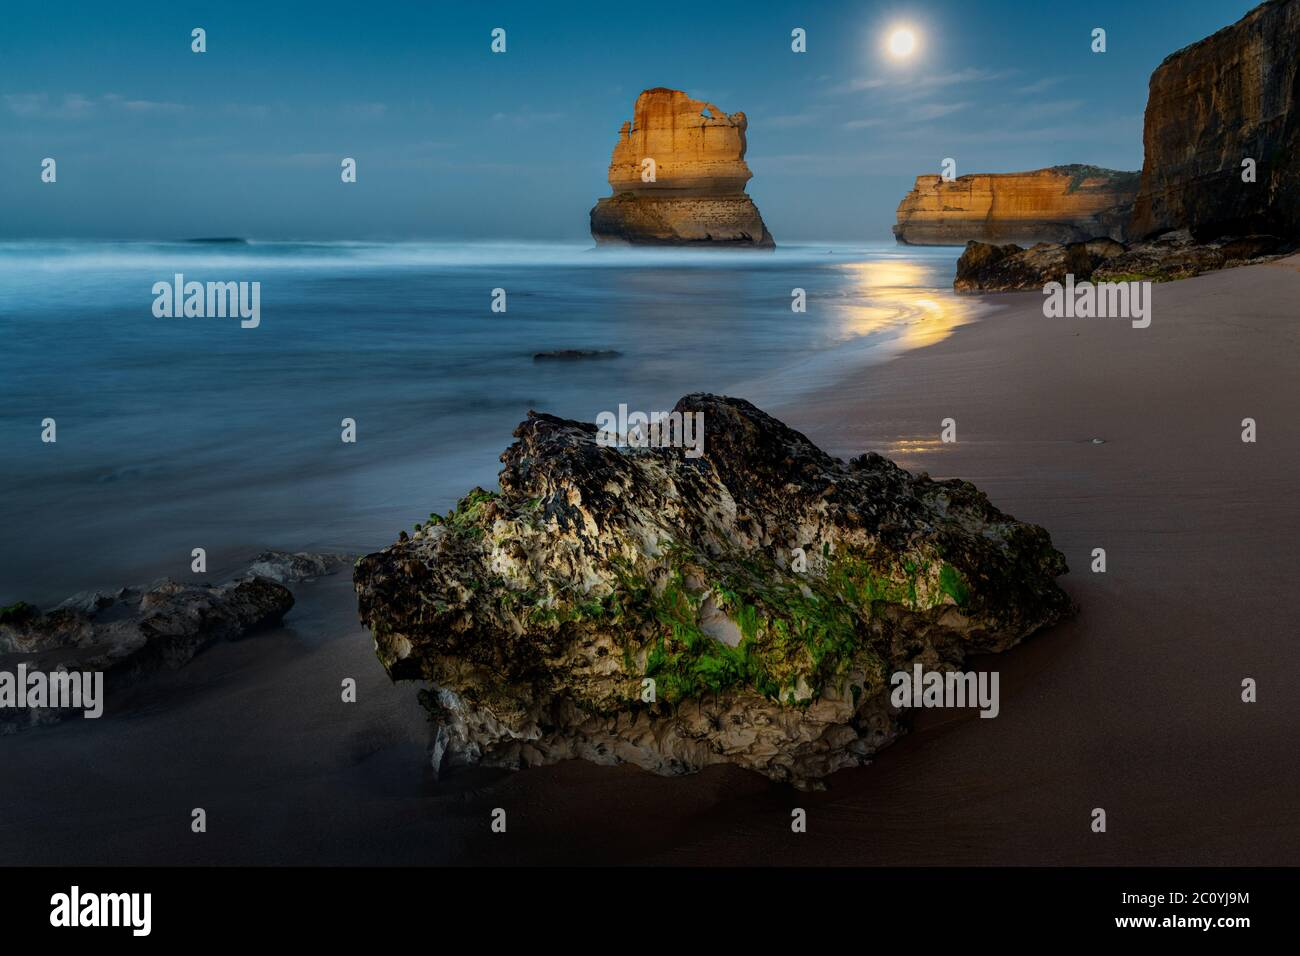 Day is dawning after a full moon night at the famous Great Ocean Road. Stock Photo